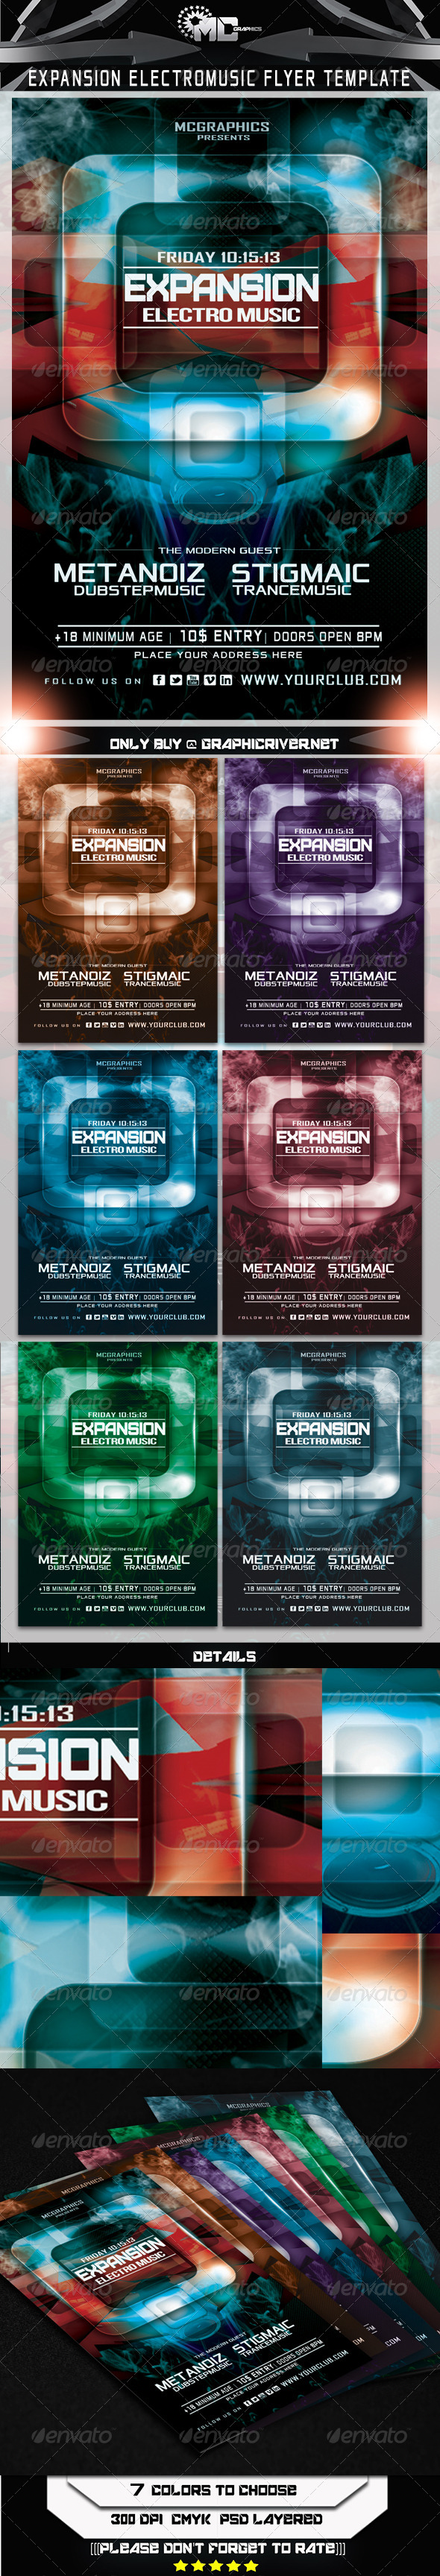 GraphicRiver Expansion Electro Music Flyer Template 5611669